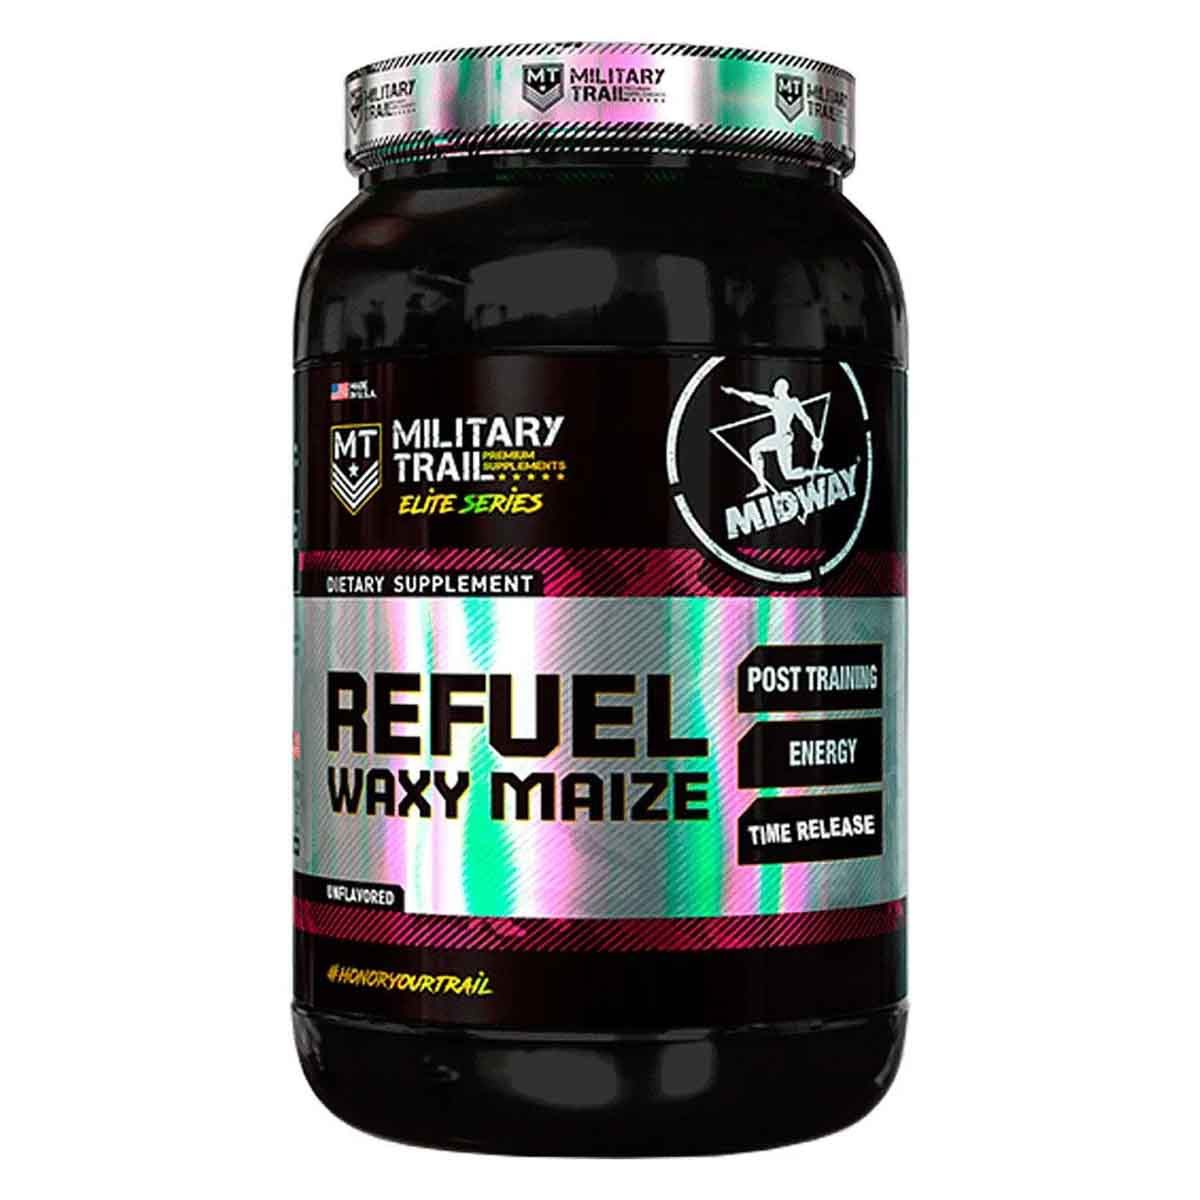 Refuel Waxy Maize Military Trail 1,4kg - Midway